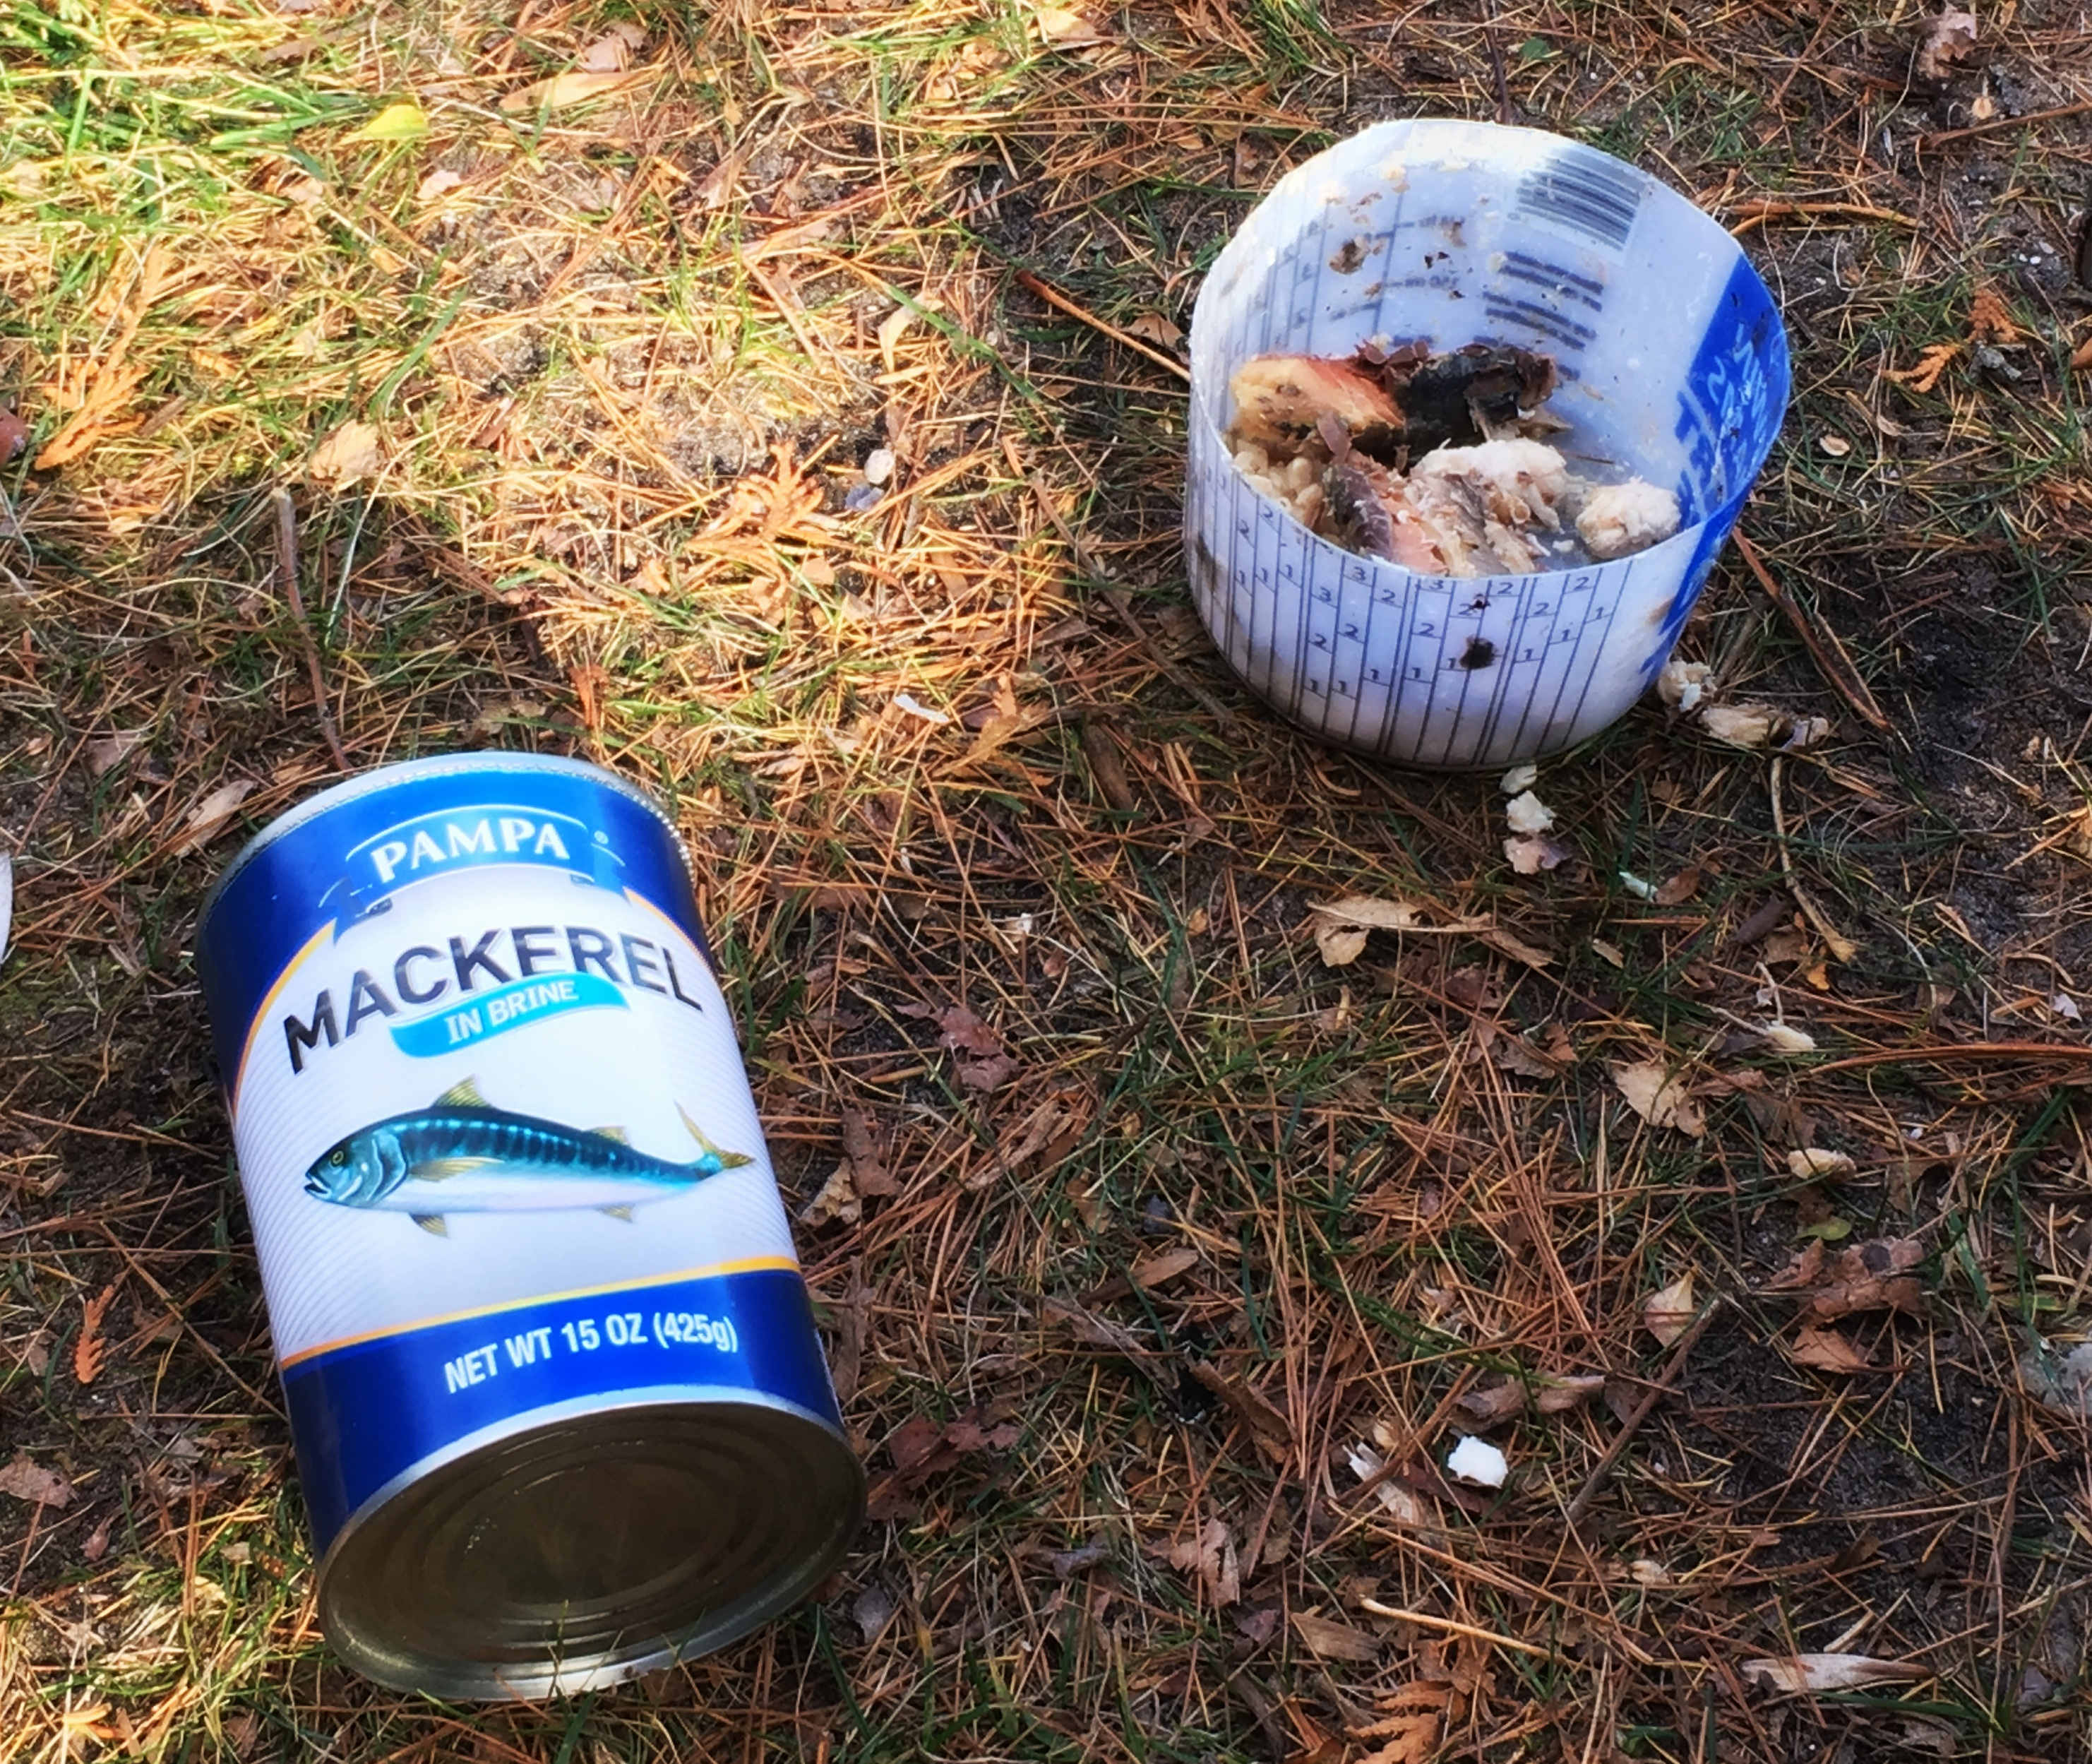 Canned Mackerel as bait